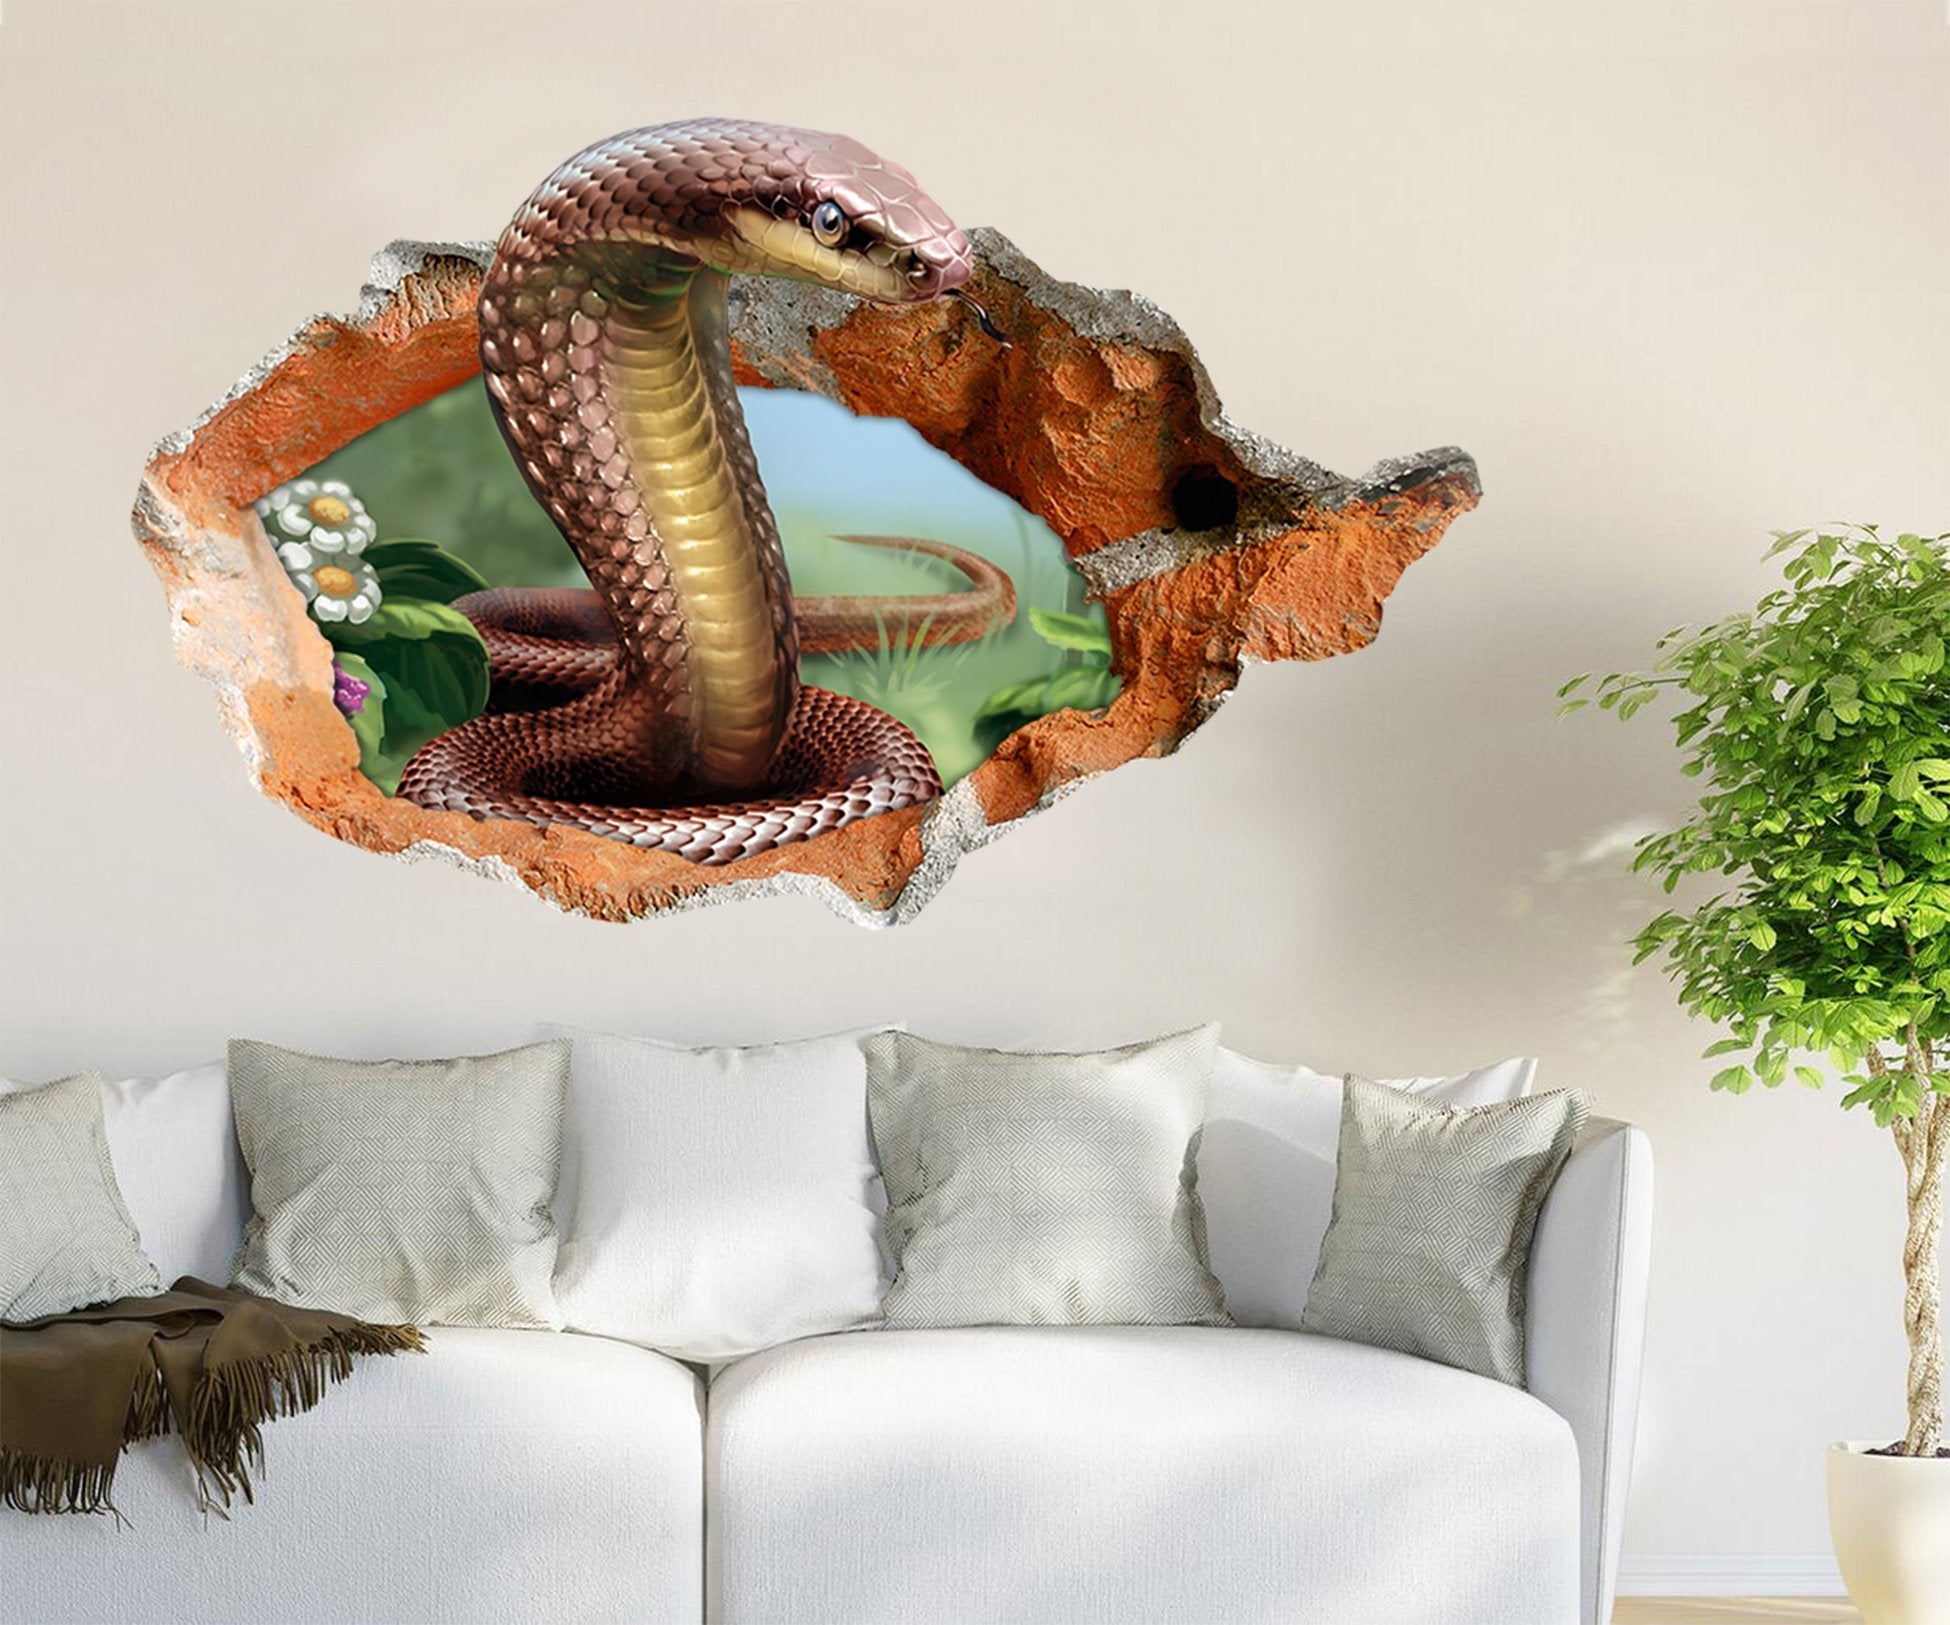 3D Dangerous Snake 93 Broken Wall Murals Wallpaper AJ Wallpaper